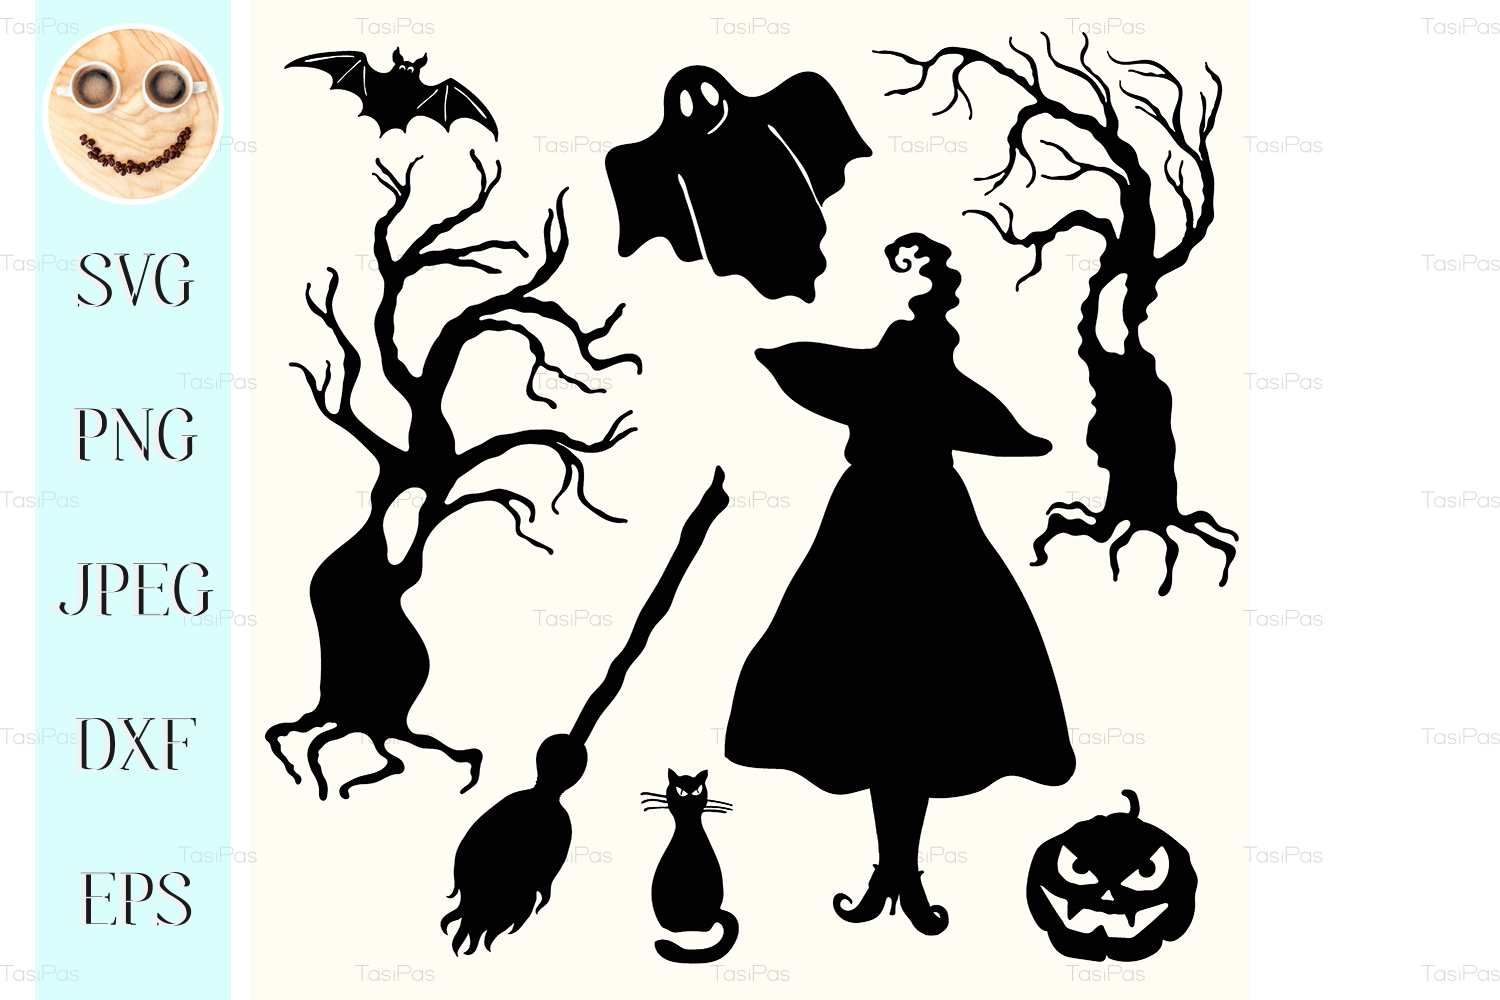 Download Free Silhouette Witch Graphic By Tasipas Creative Fabrica for Cricut Explore, Silhouette and other cutting machines.